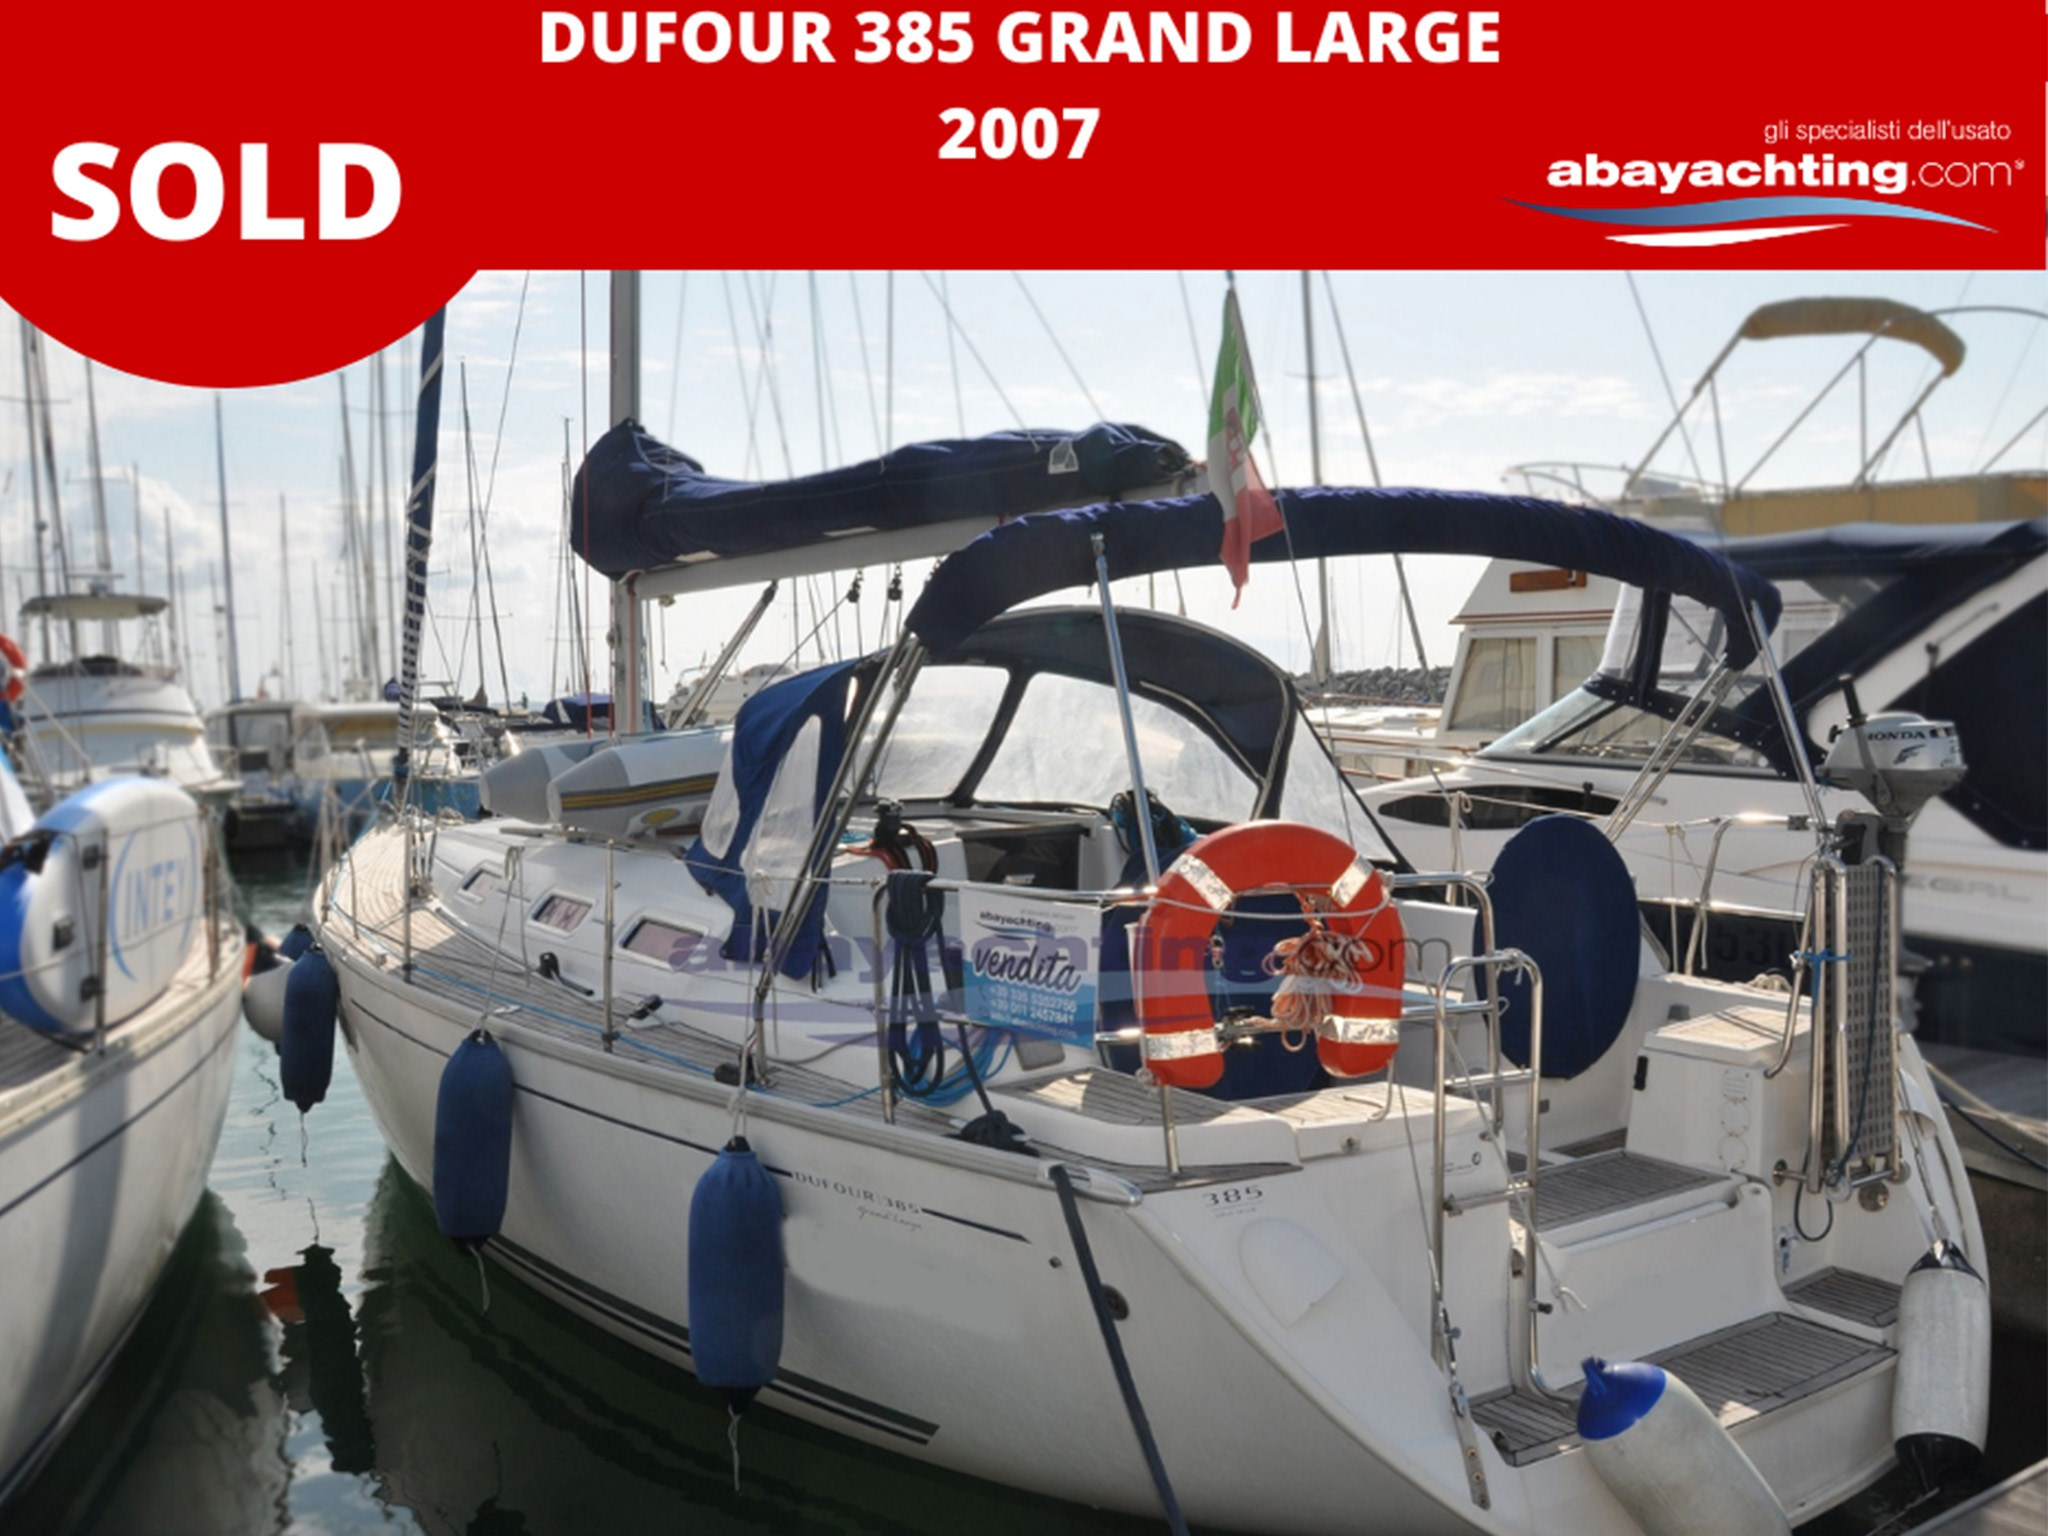 Dufour 385 Grand Large vendu